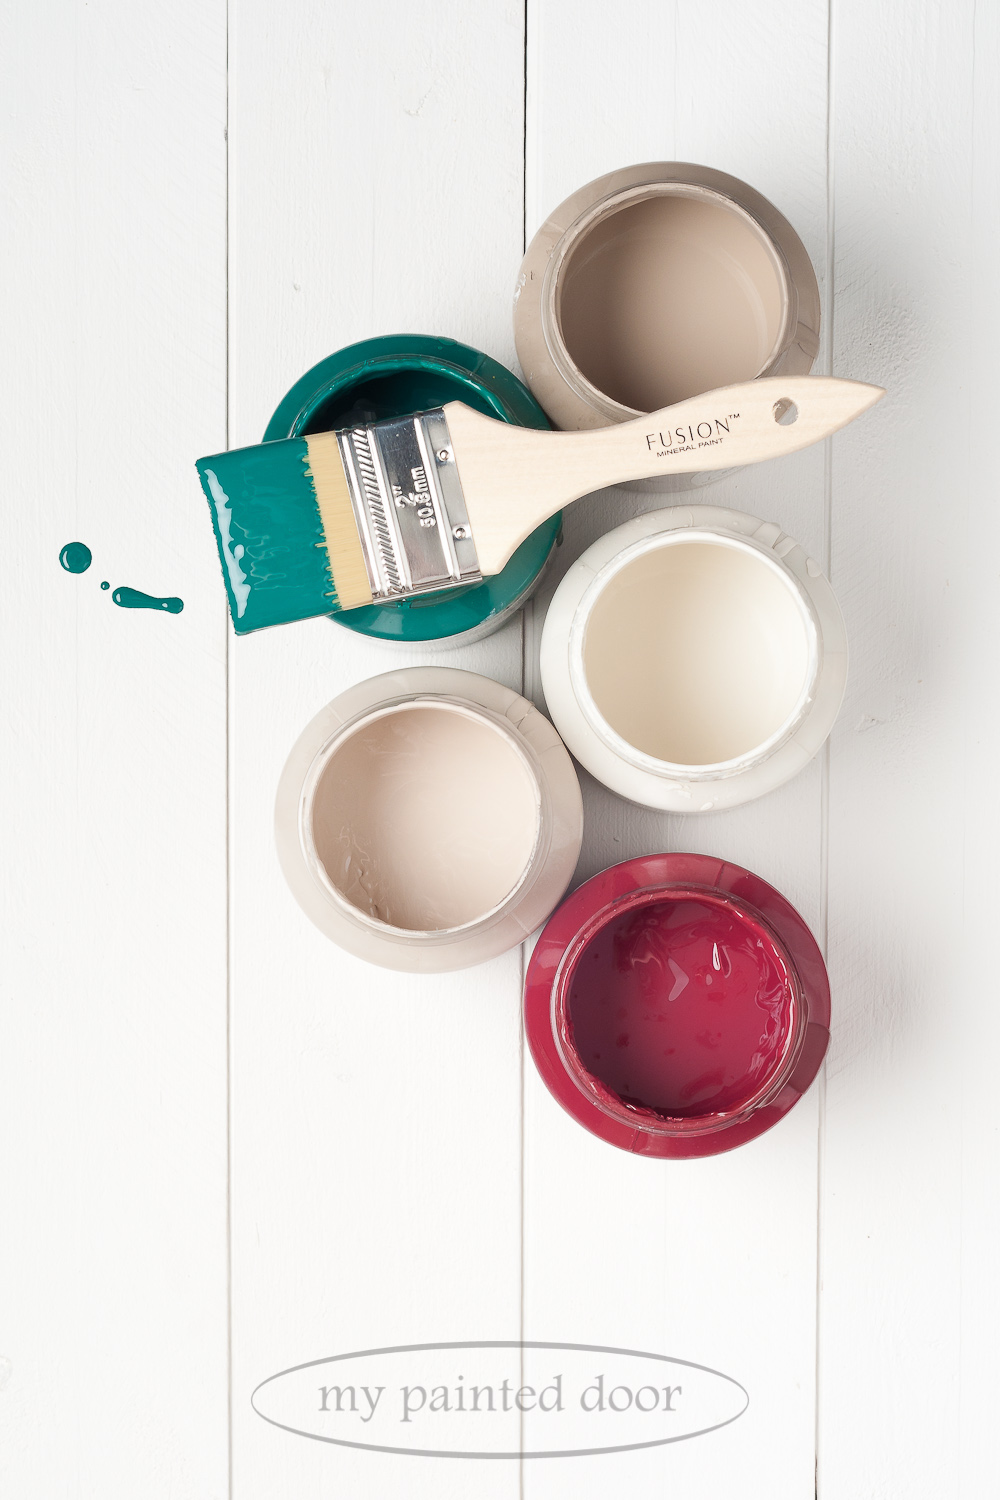 Fusion Mineral Paint Renfrew Blue, Algonquin, Raw Silk, Cathedral Taupe and Cranberry